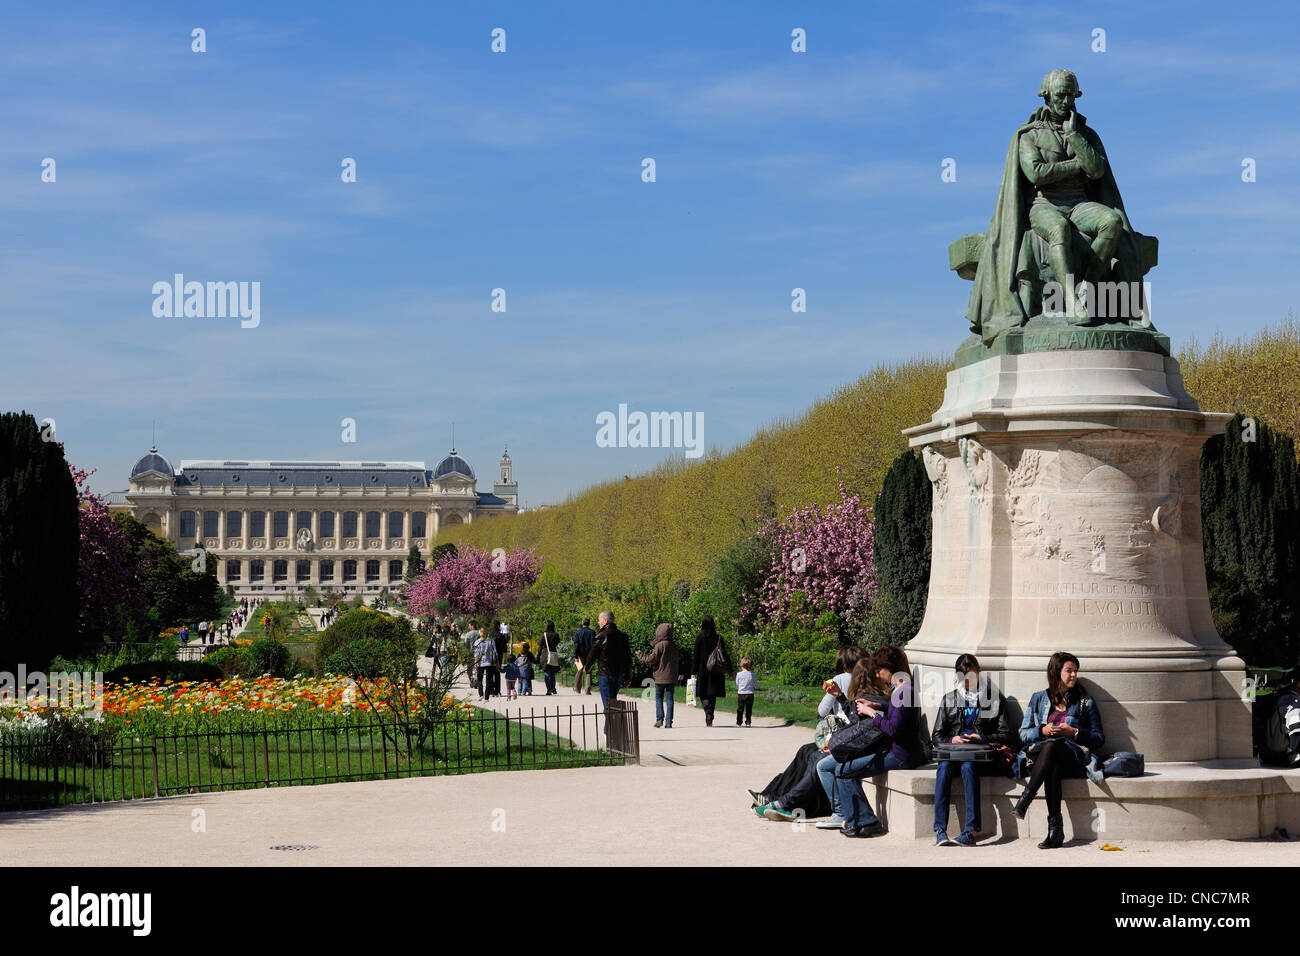 France, Paris, Museum of Natural History, the Plants Gardens and the Grand Gallery of the Evolution - Stock Image